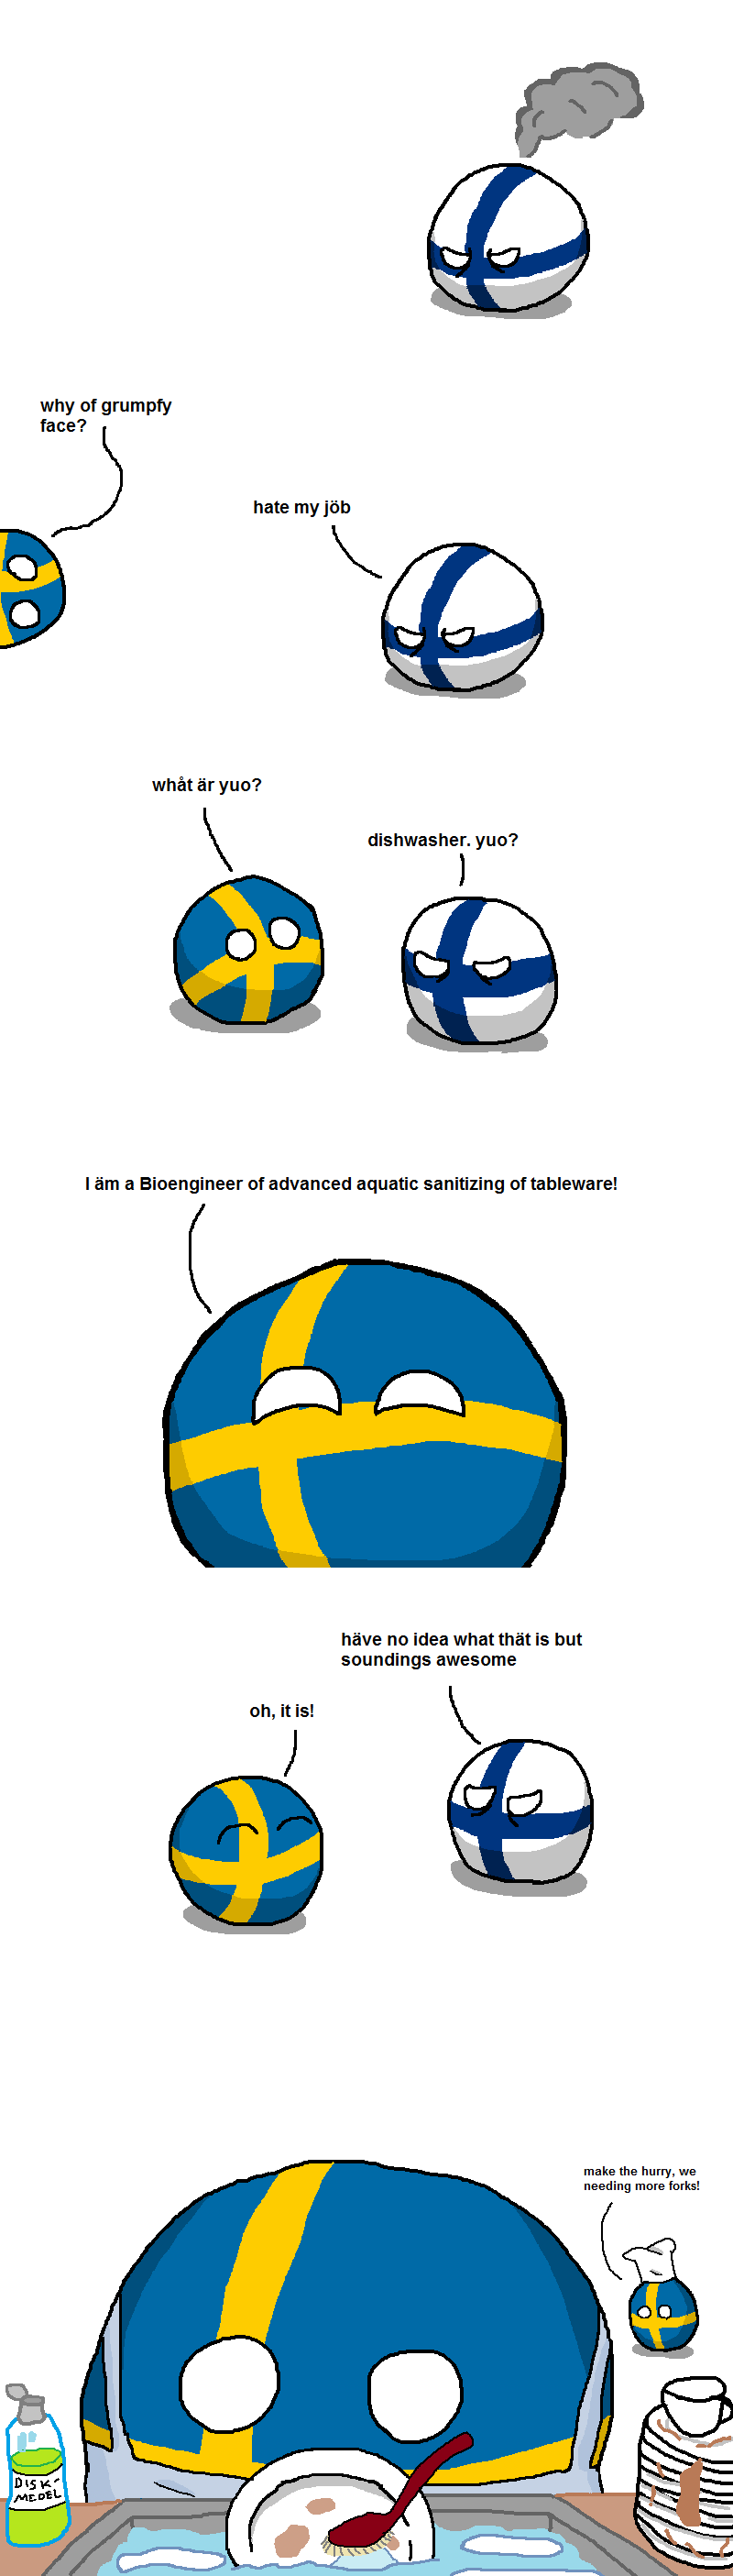 Sweden doing what Sweden does